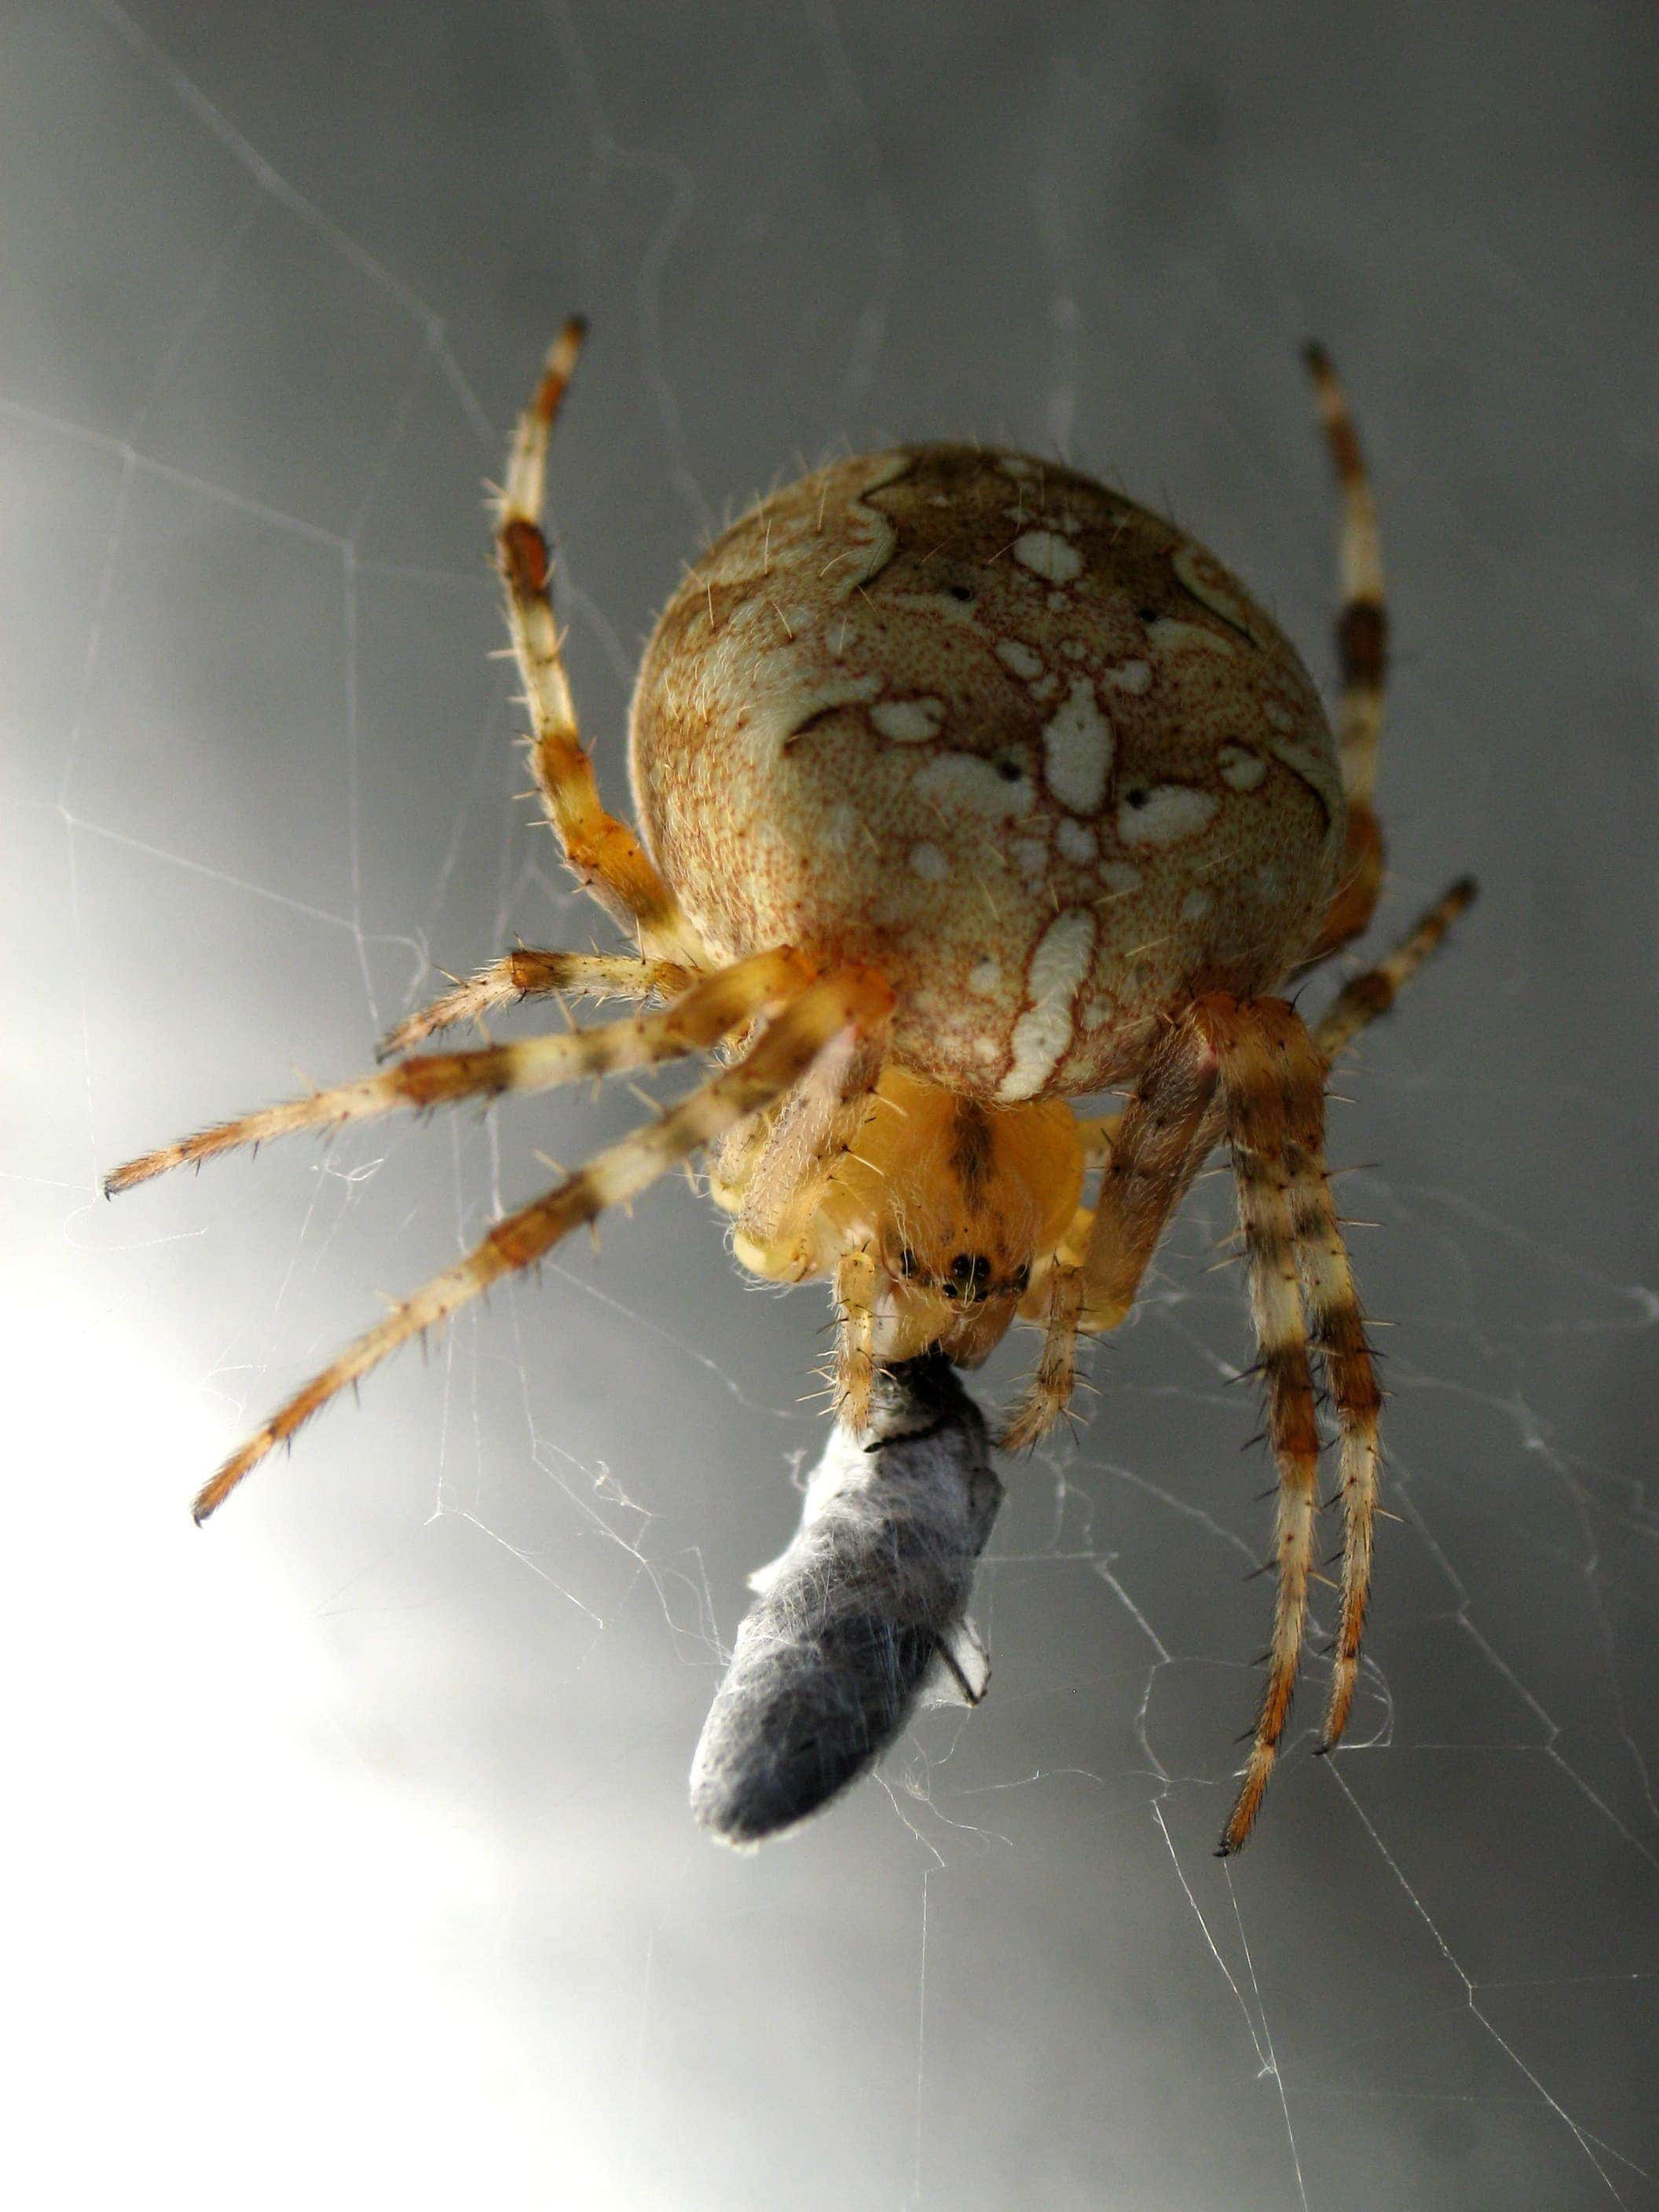 Picture of Araneus diadematus (Cross Orb-weaver) - Female - Gravid,Prey